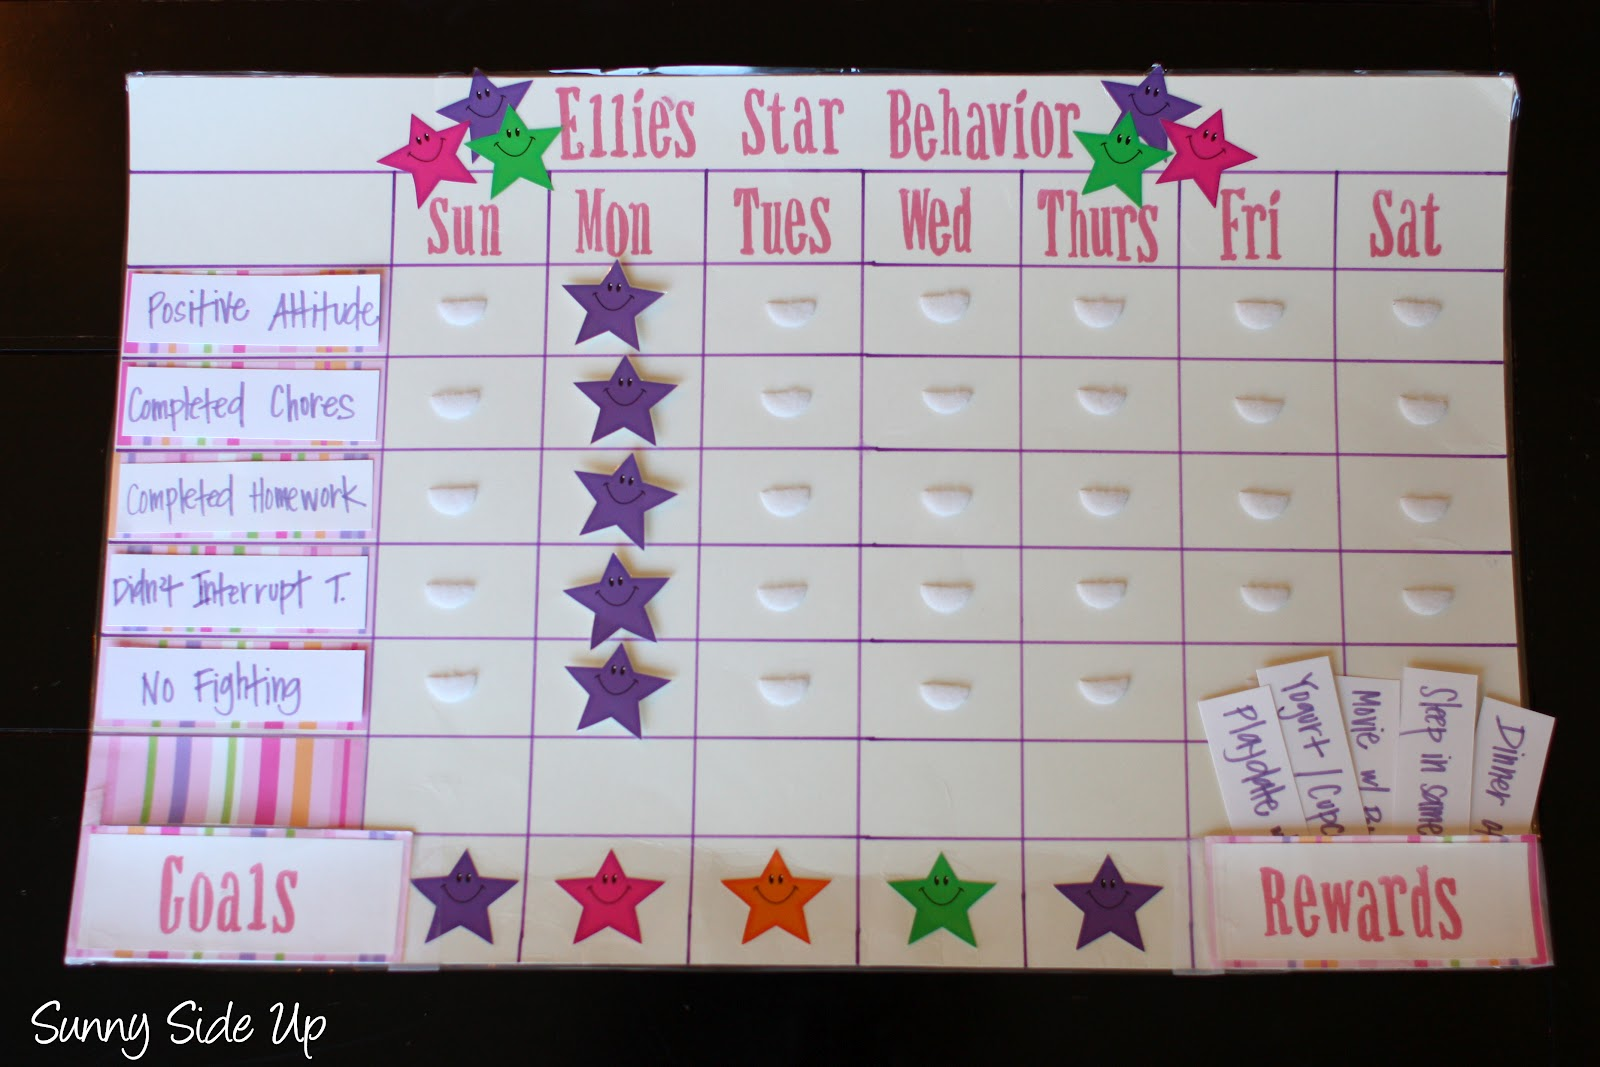 Star Behavior Charts re born! The Sunny Side Up Blog